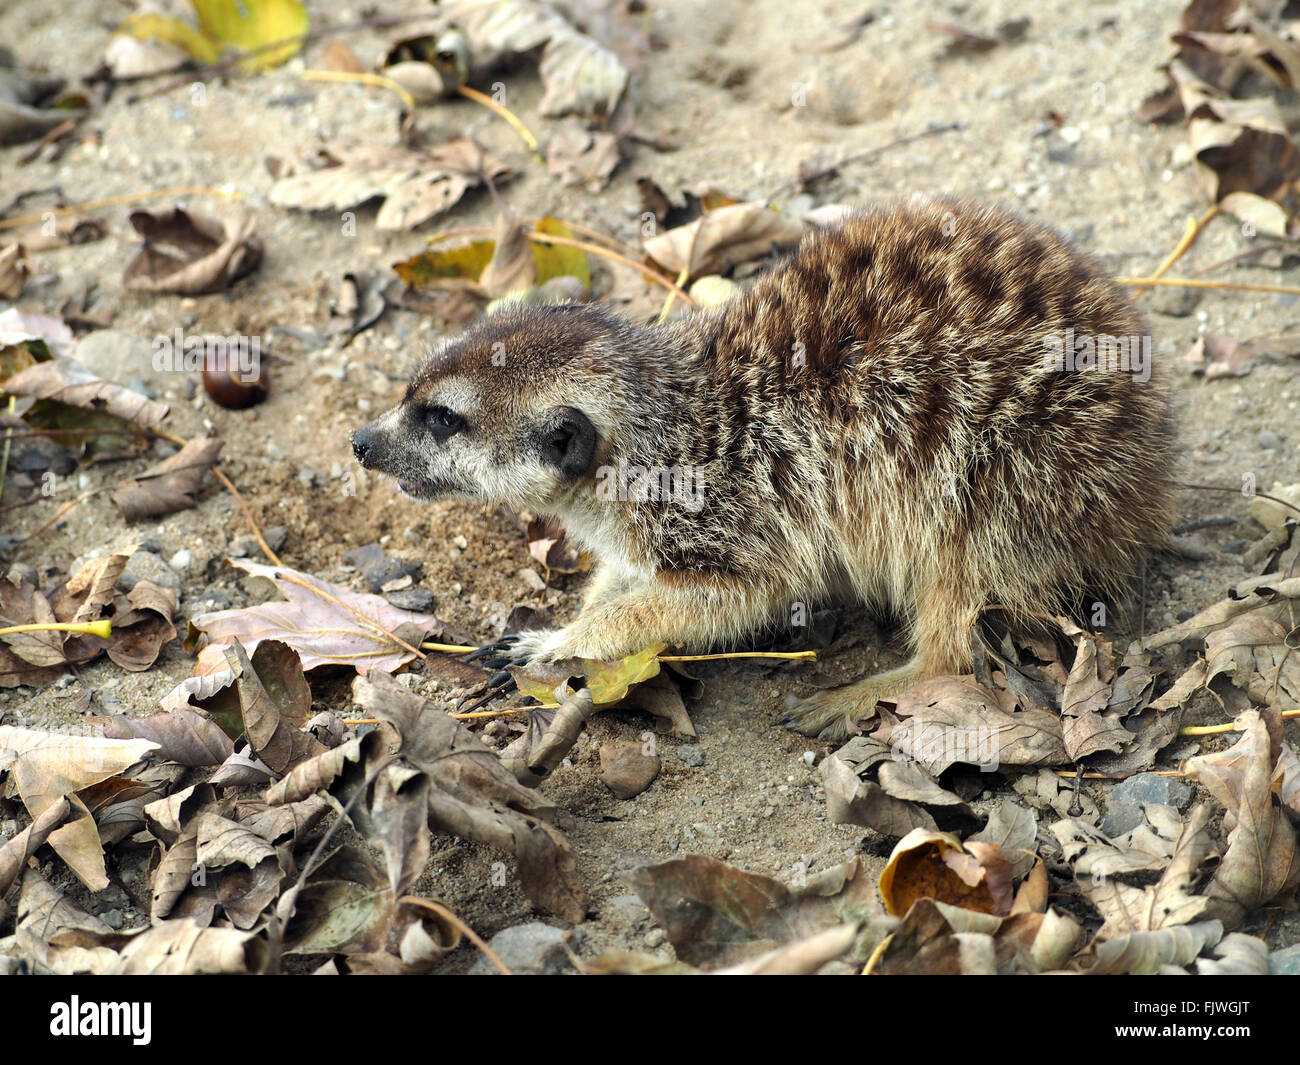 High Angle View Of Meerkat On Messy Field - Stock Image